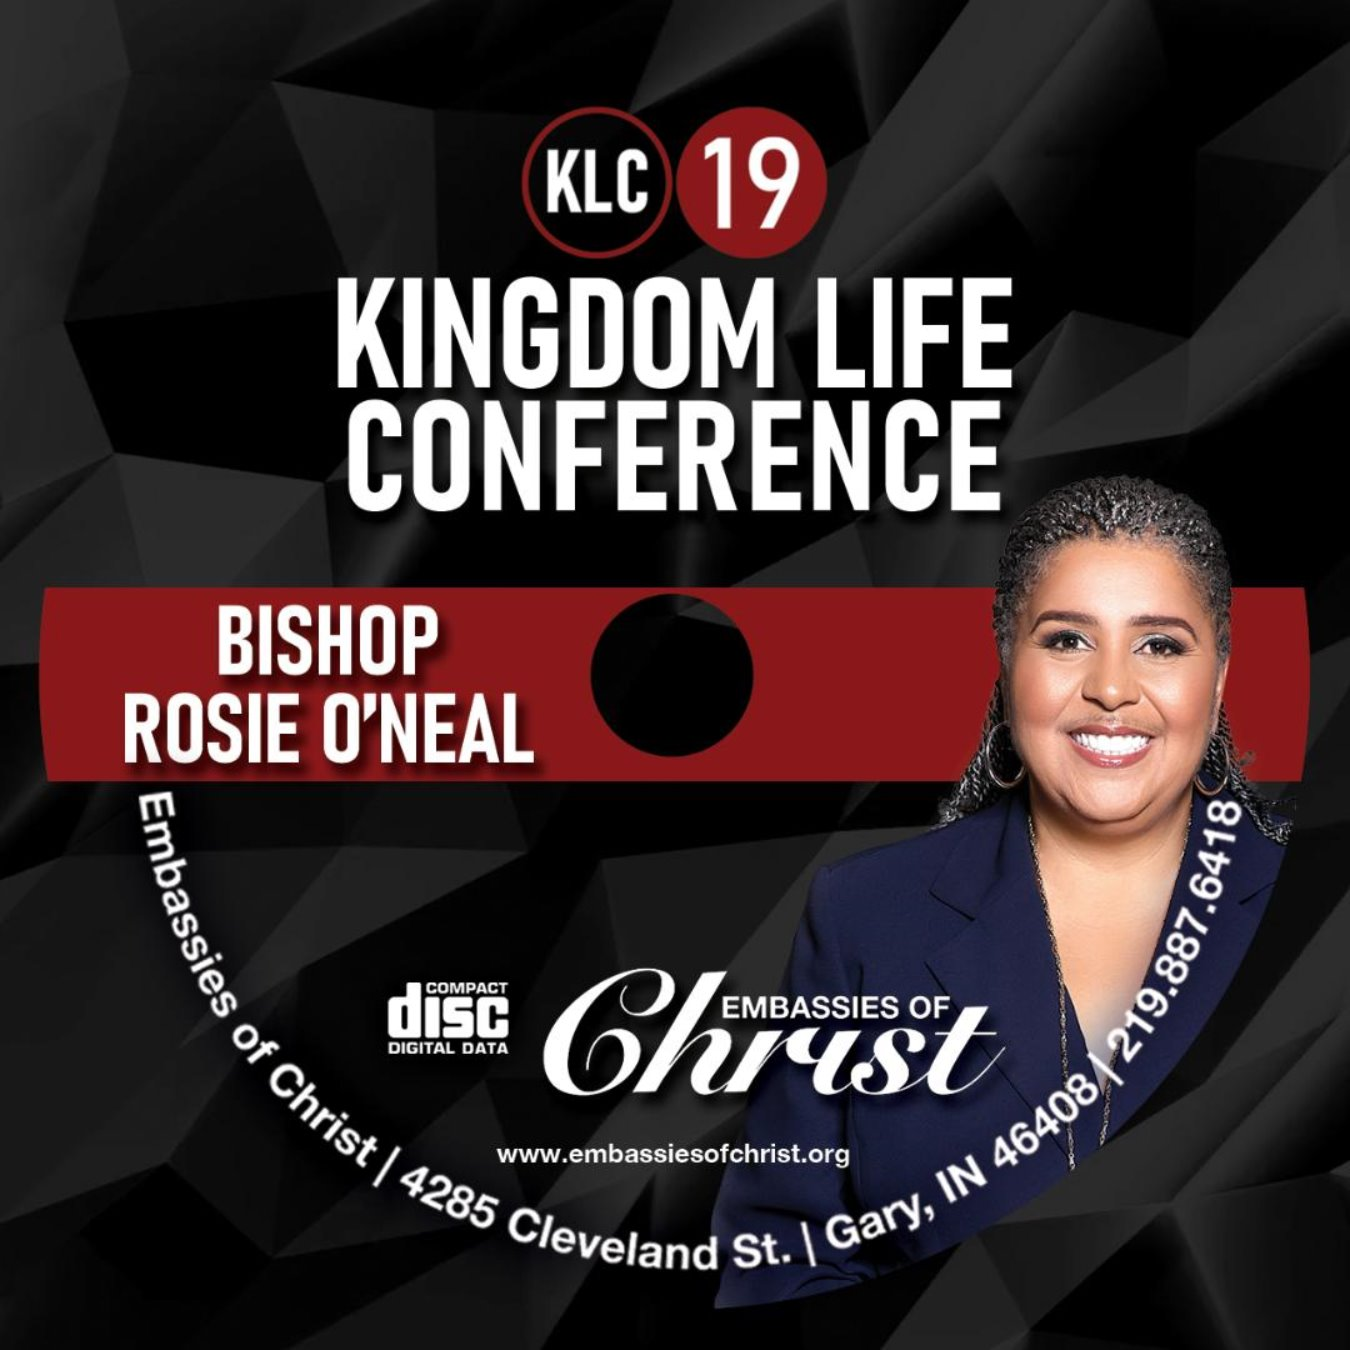 Bishop Rosie O'Neal